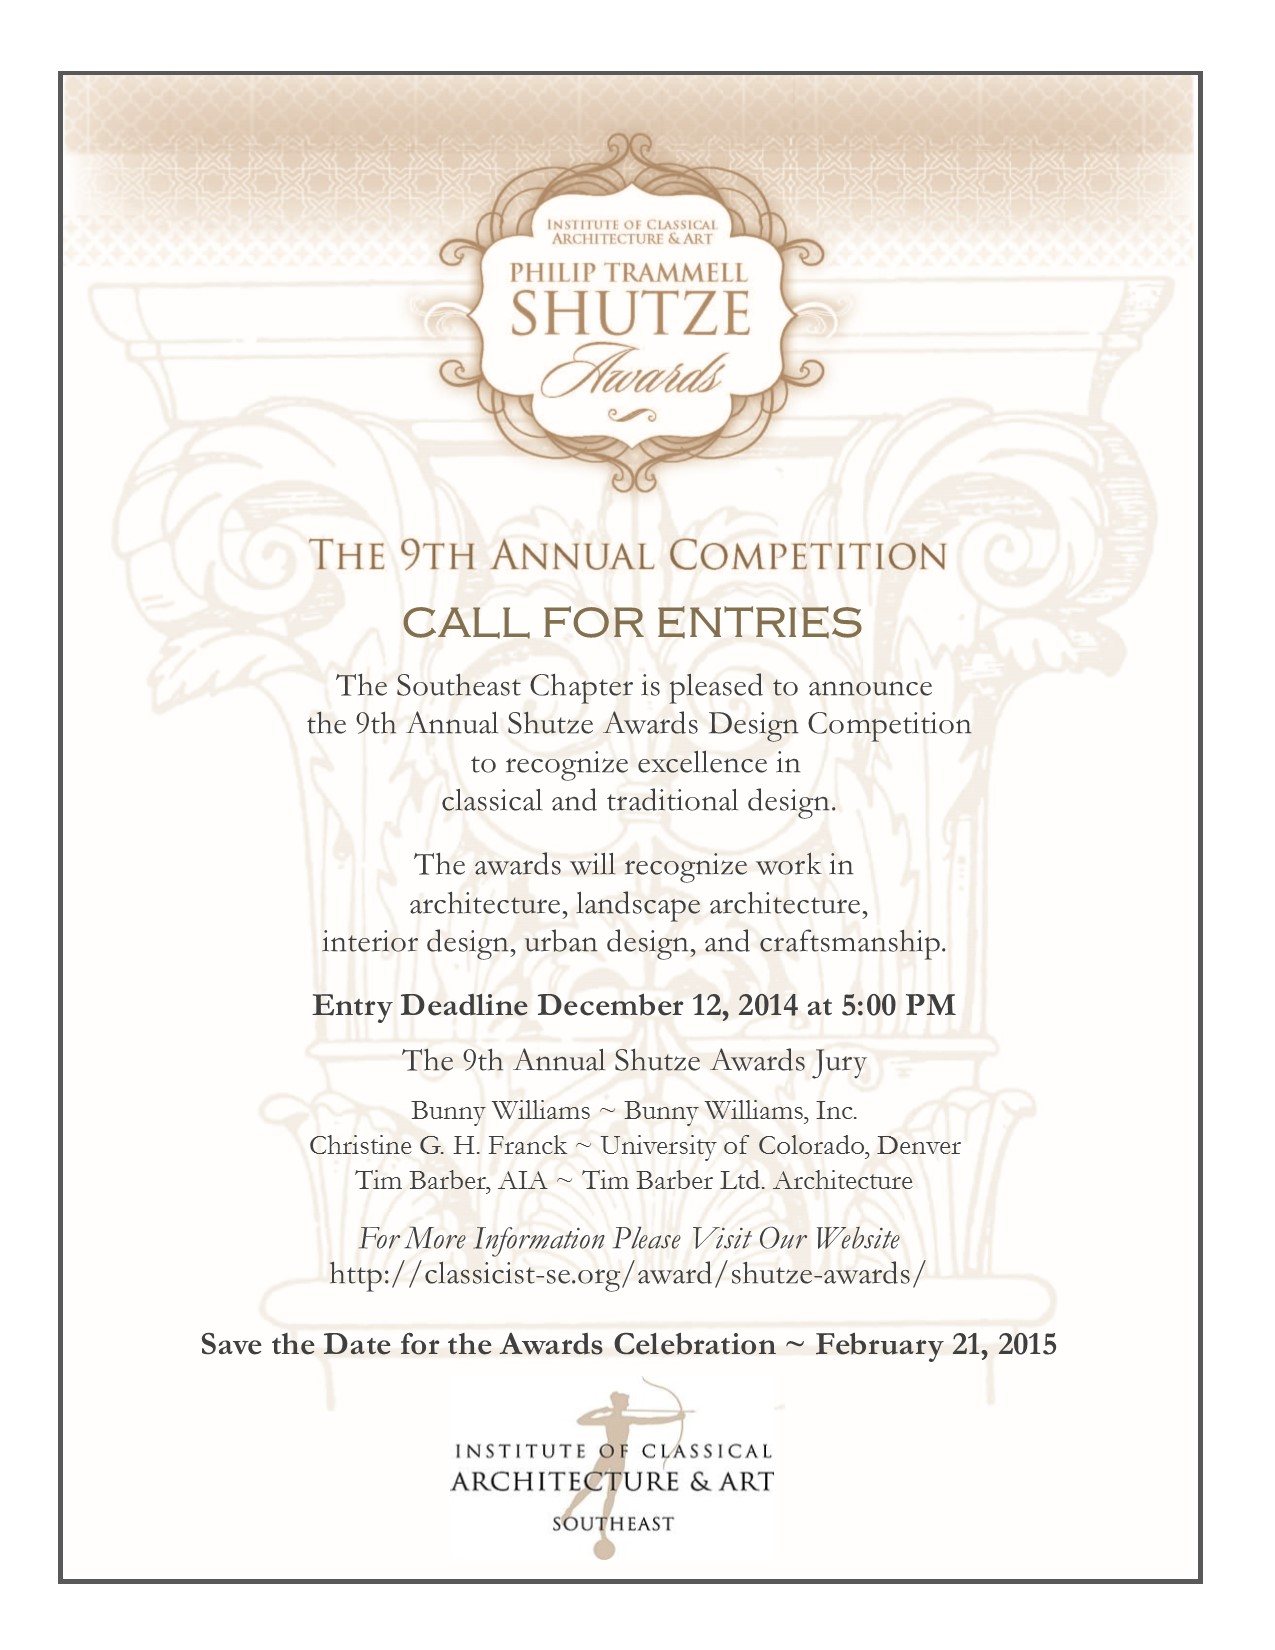 Shutze_Awards_2015_Call_for_Entries_Eblast_with_Jury_and_STD_added